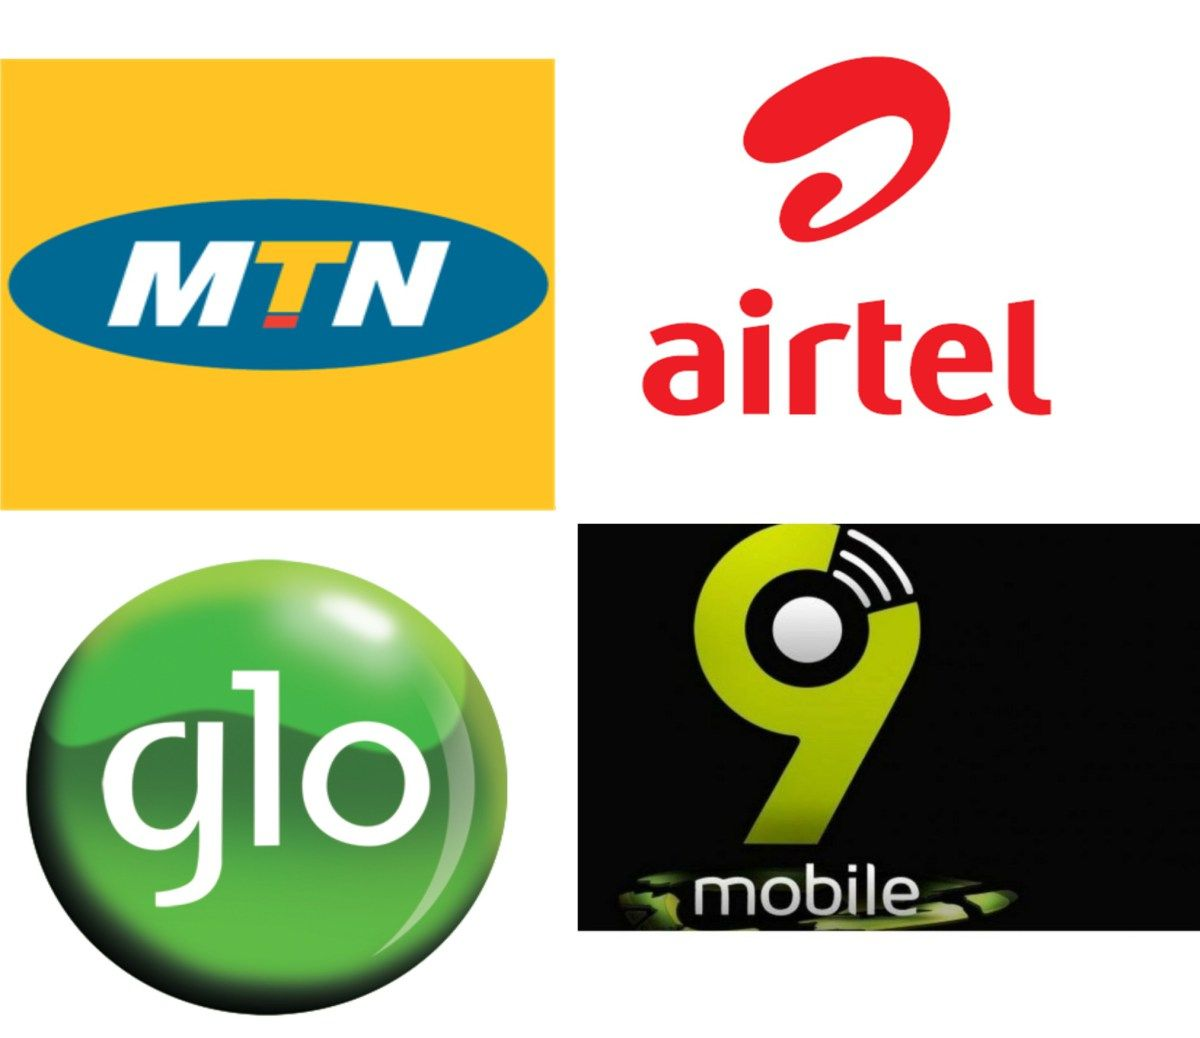 Night bundle plans and codes for all Nigerian network